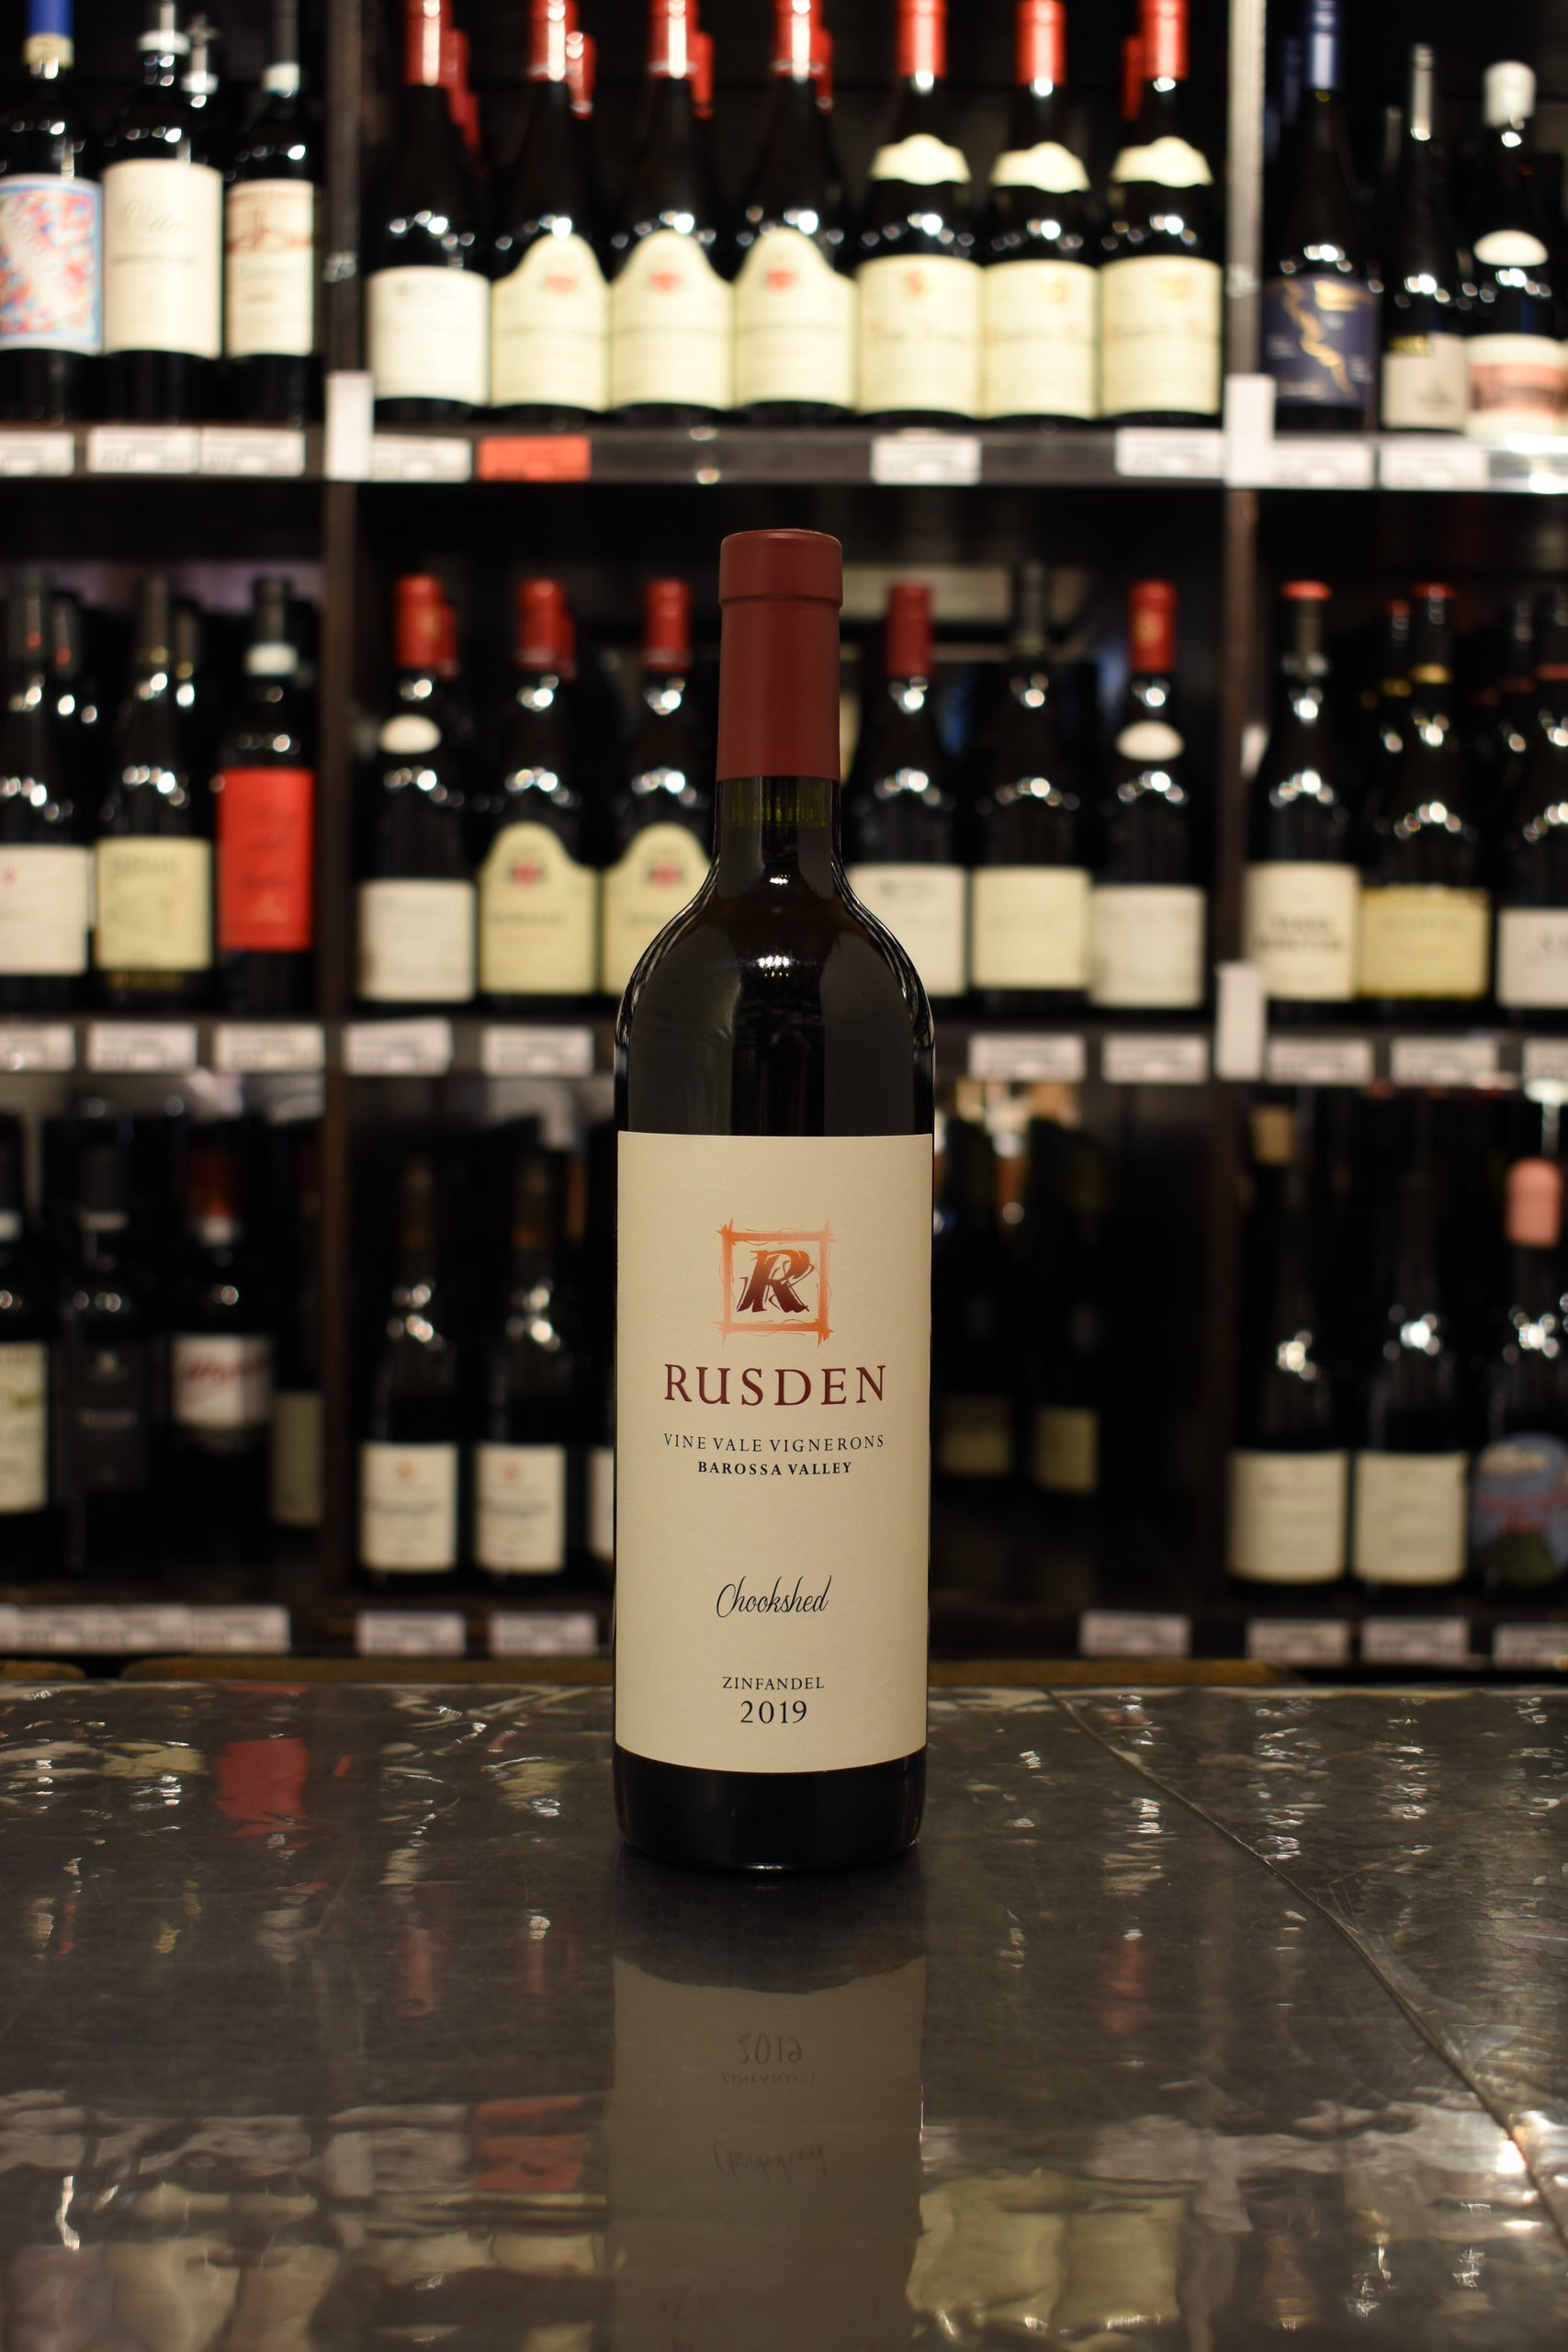 Rusden 'Chookshed' Zinfandel